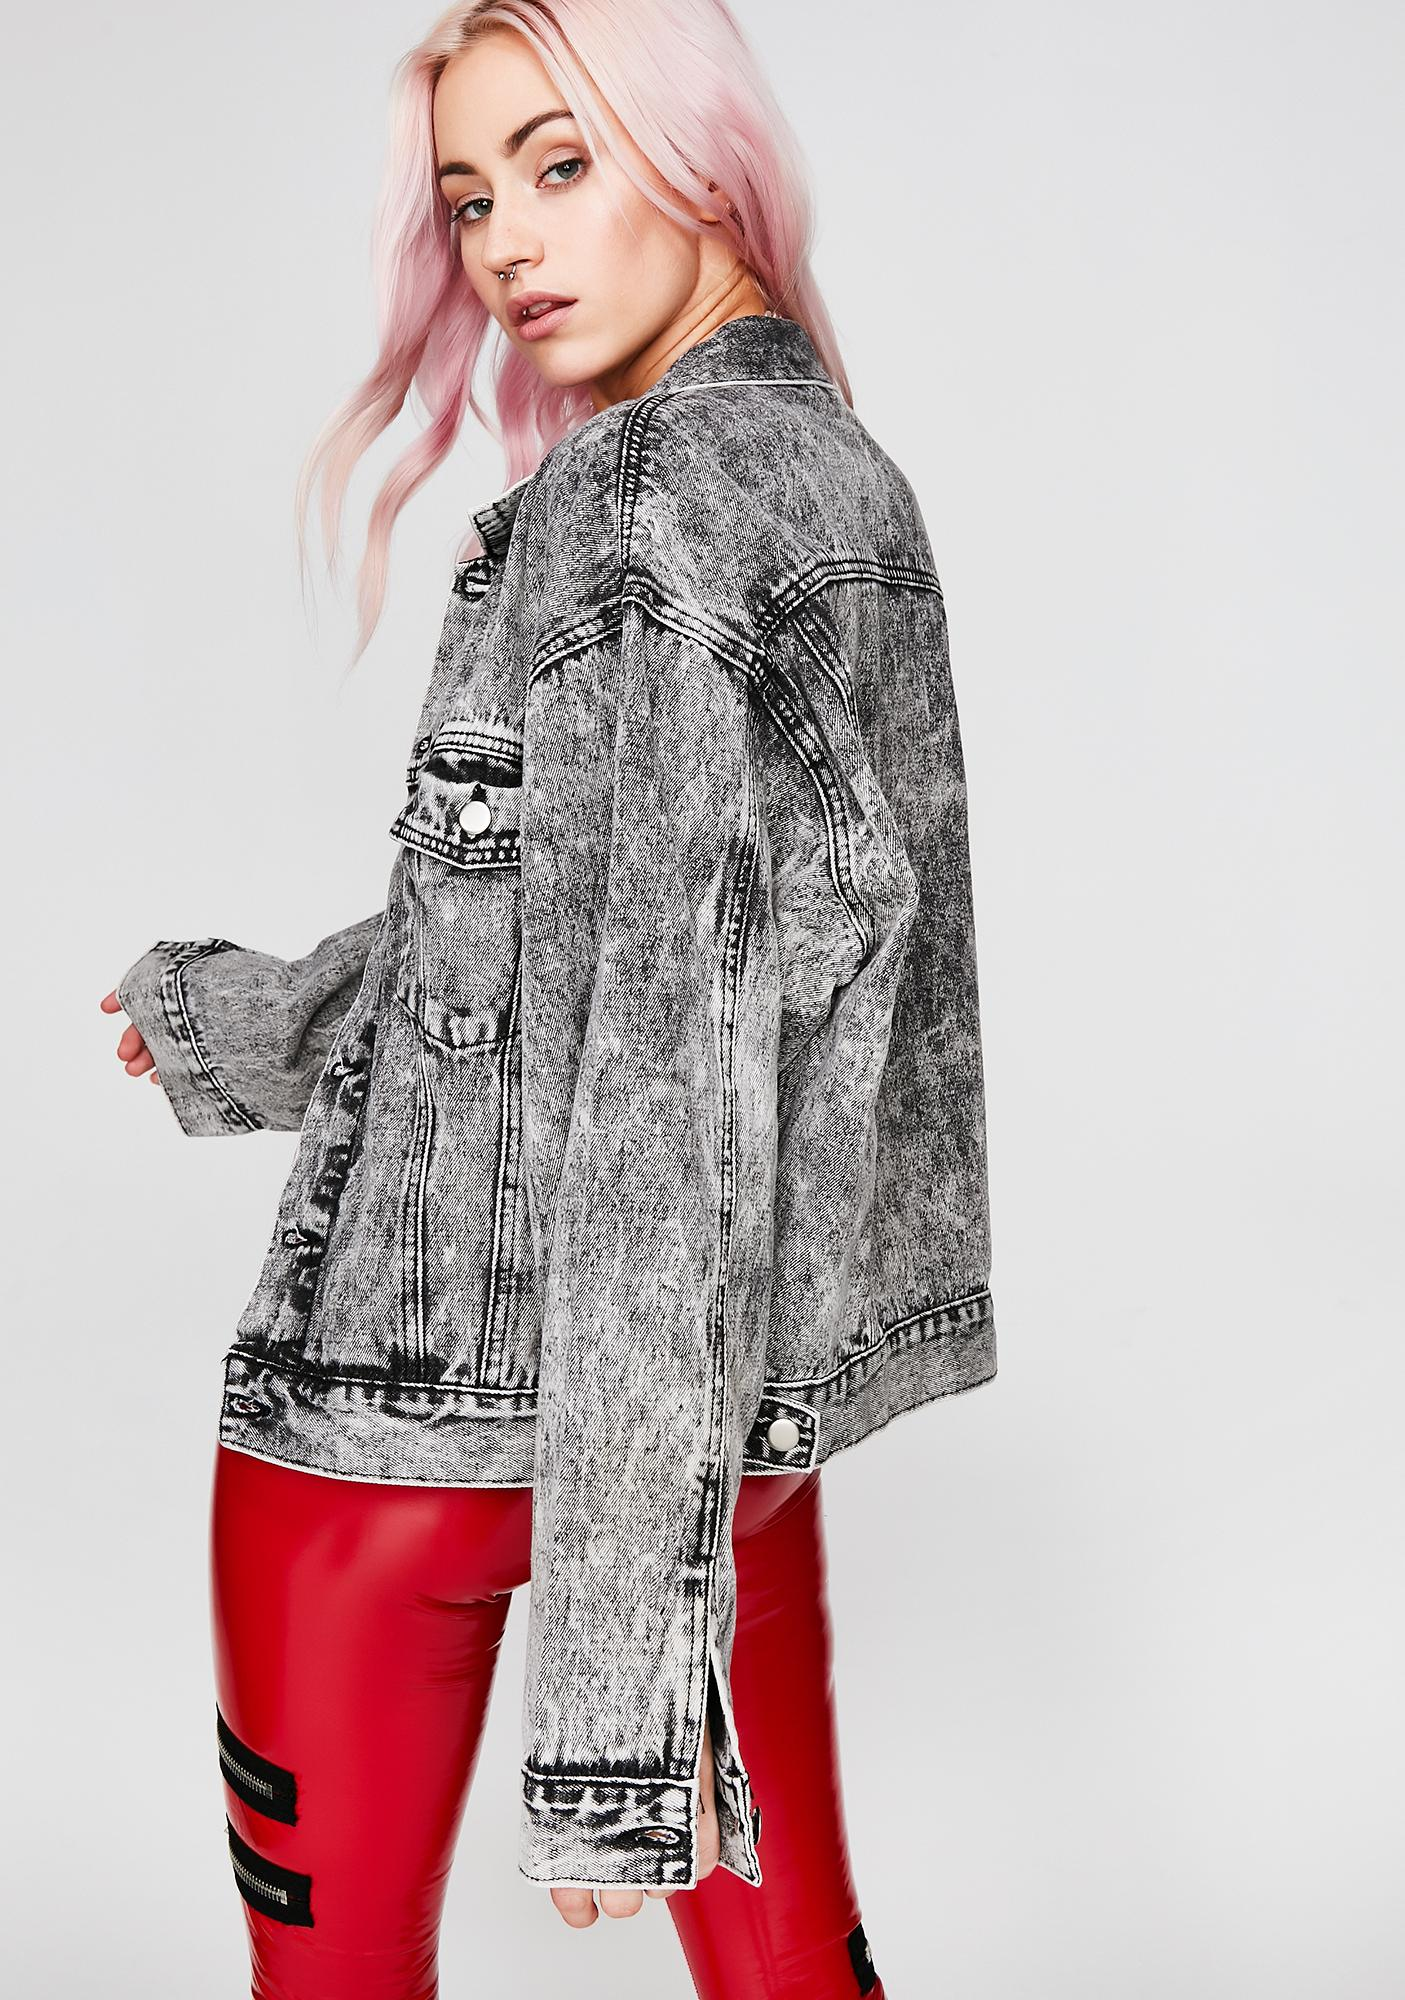 Cloudy Let'z Ride Denim Jacket